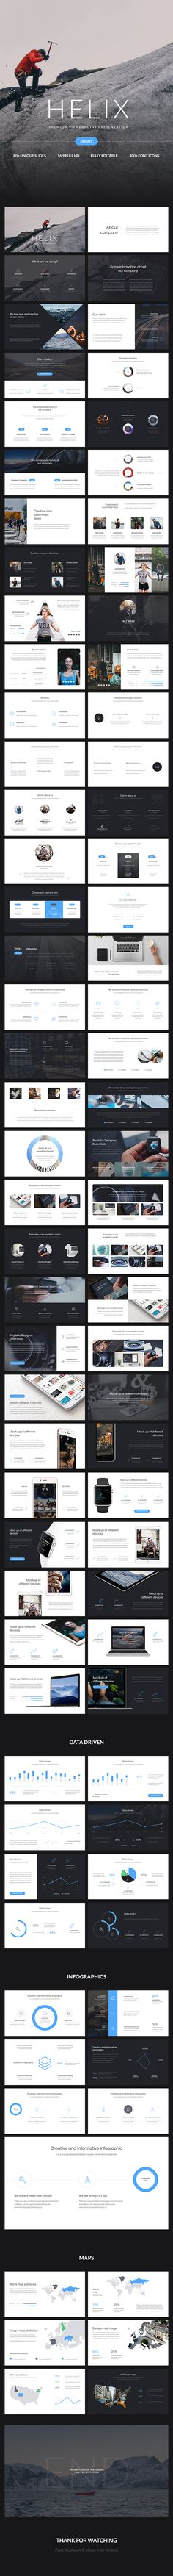 Helix Premium Powerpoint Presentation https://graphicriver.net/item/helix-powerpoint-presentation/15473833?ref=fisihsani